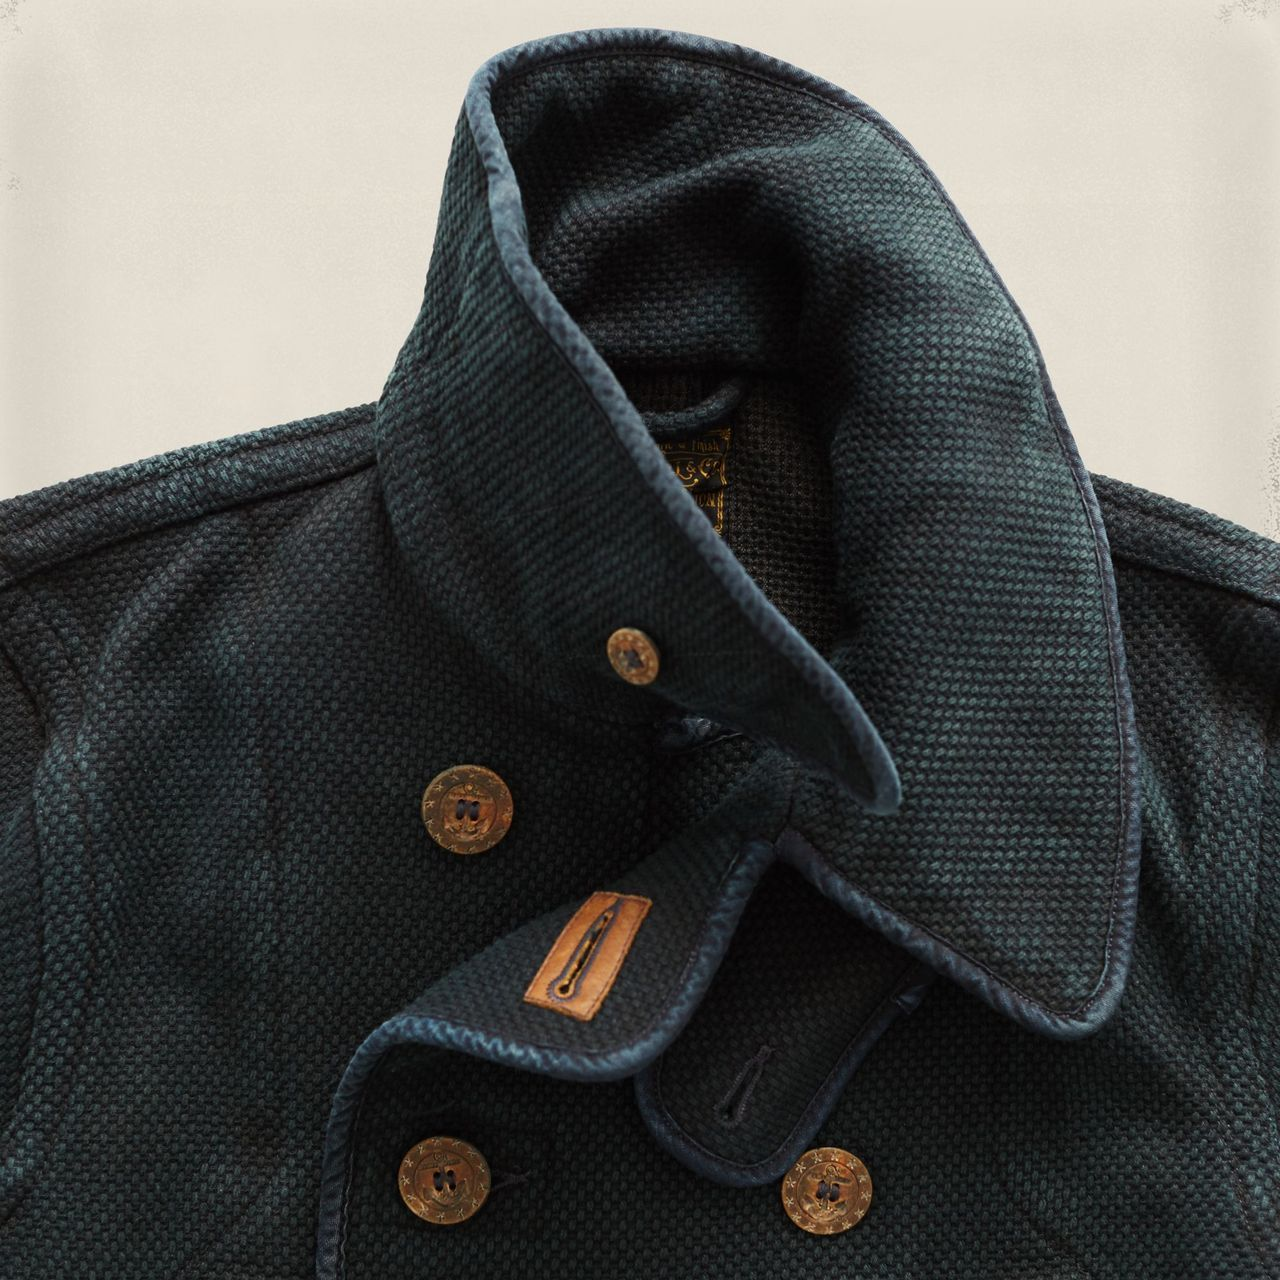 Limited-edition coat with details inspired by vintage Japanese firemen's jackets. Made from indigo-dyed basket-woven cotton that emula...